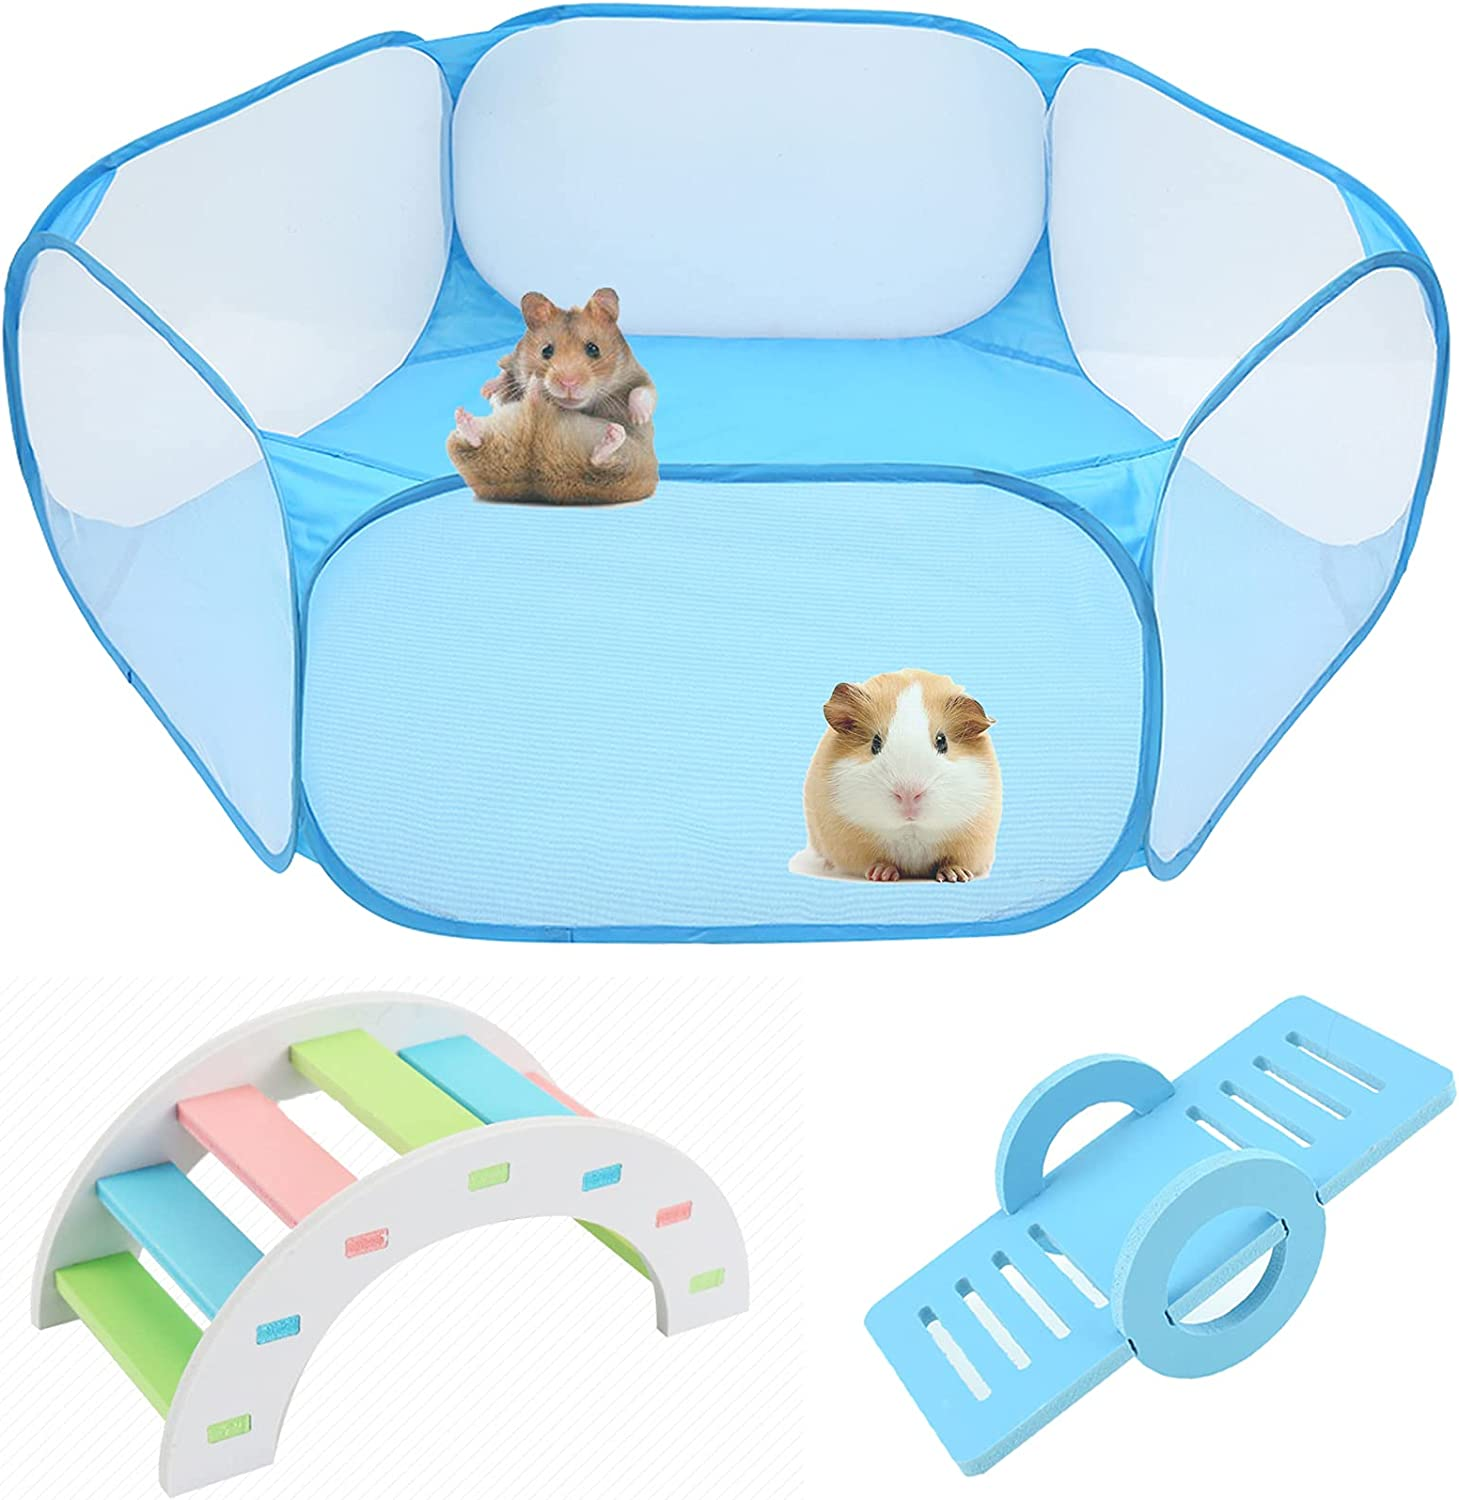 Hamster Foldable Exercise Playpen Transparent Kansas Fresno Mall City Mall Breathable Pe and